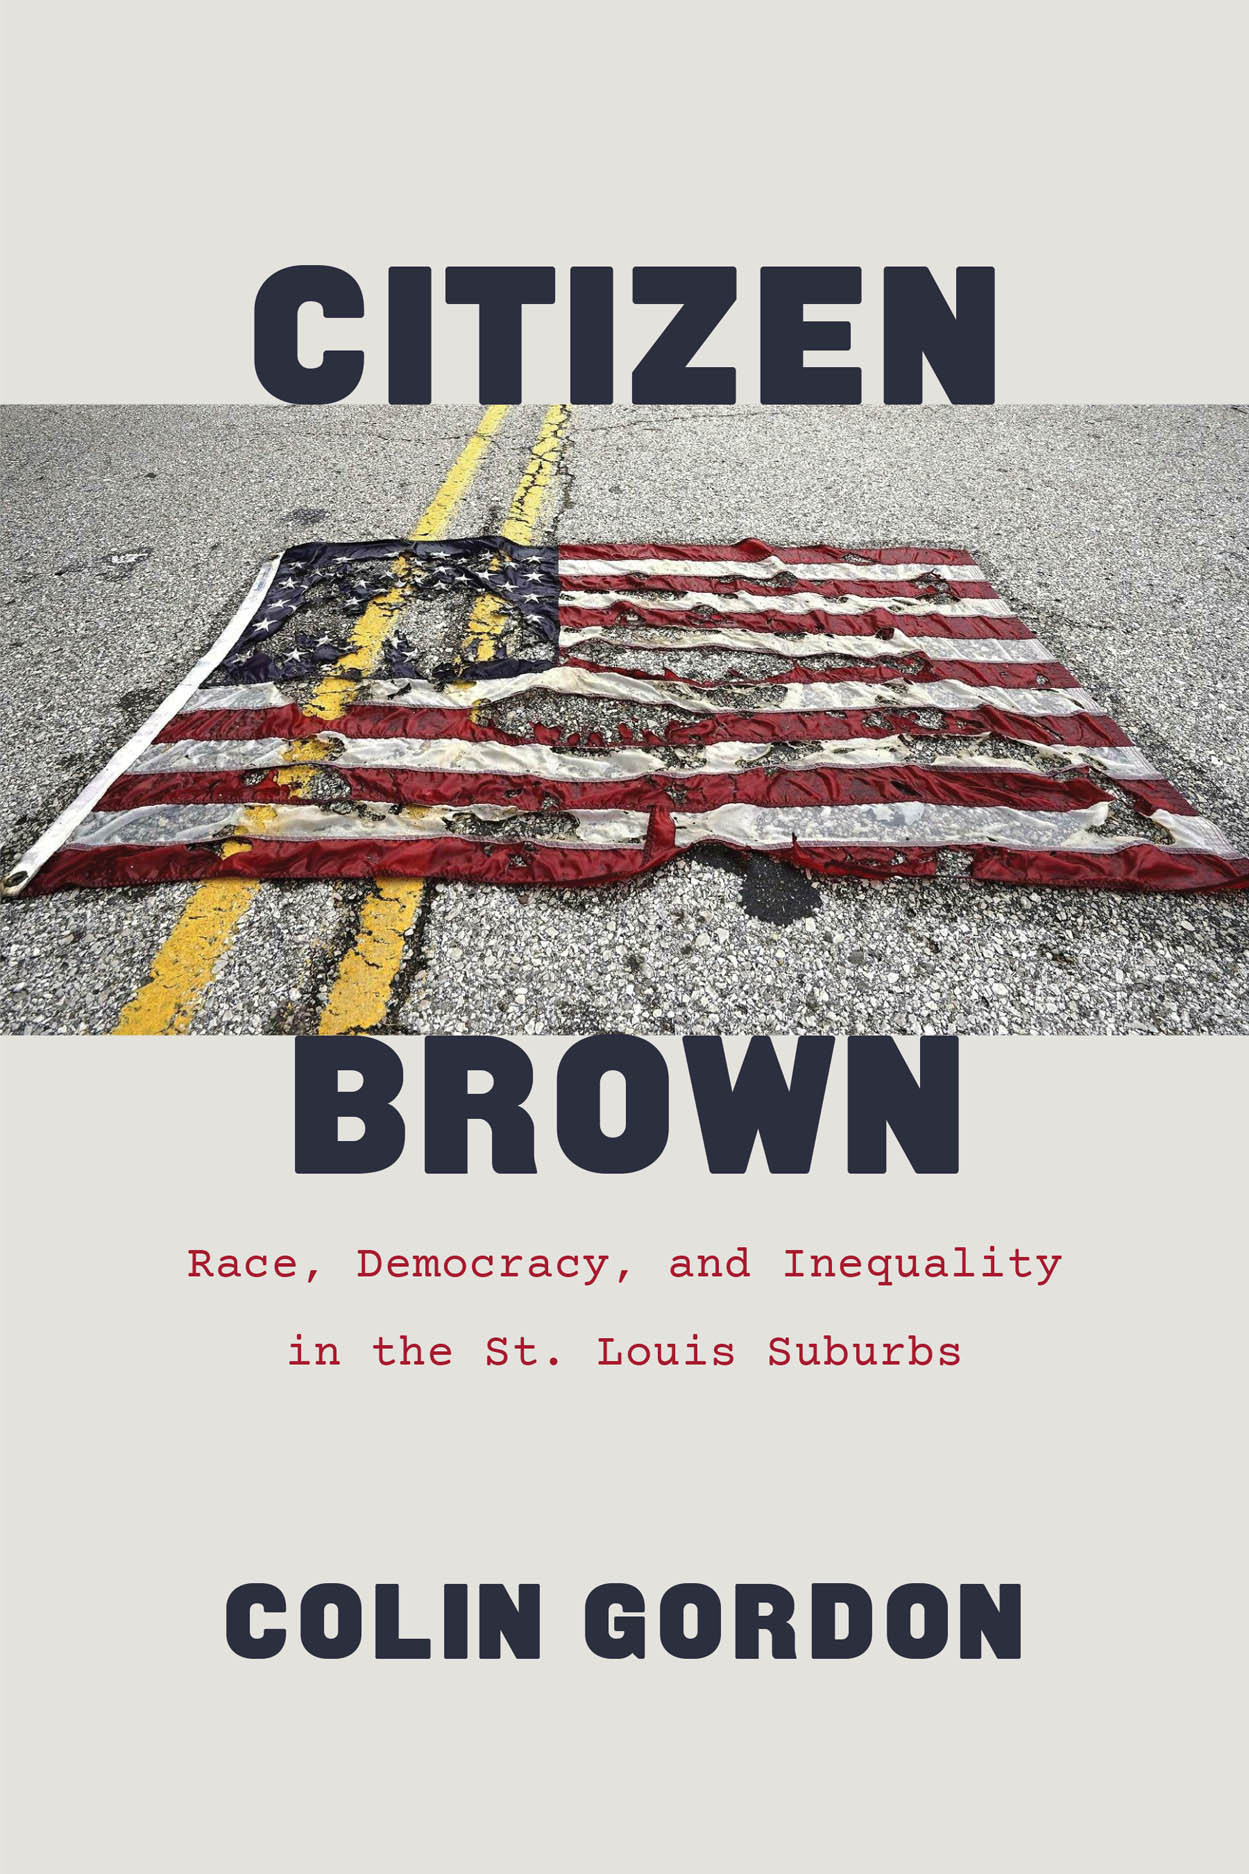 Citizen Brown: Race, Democracy, and Inequality in the St. Louis Suburbs